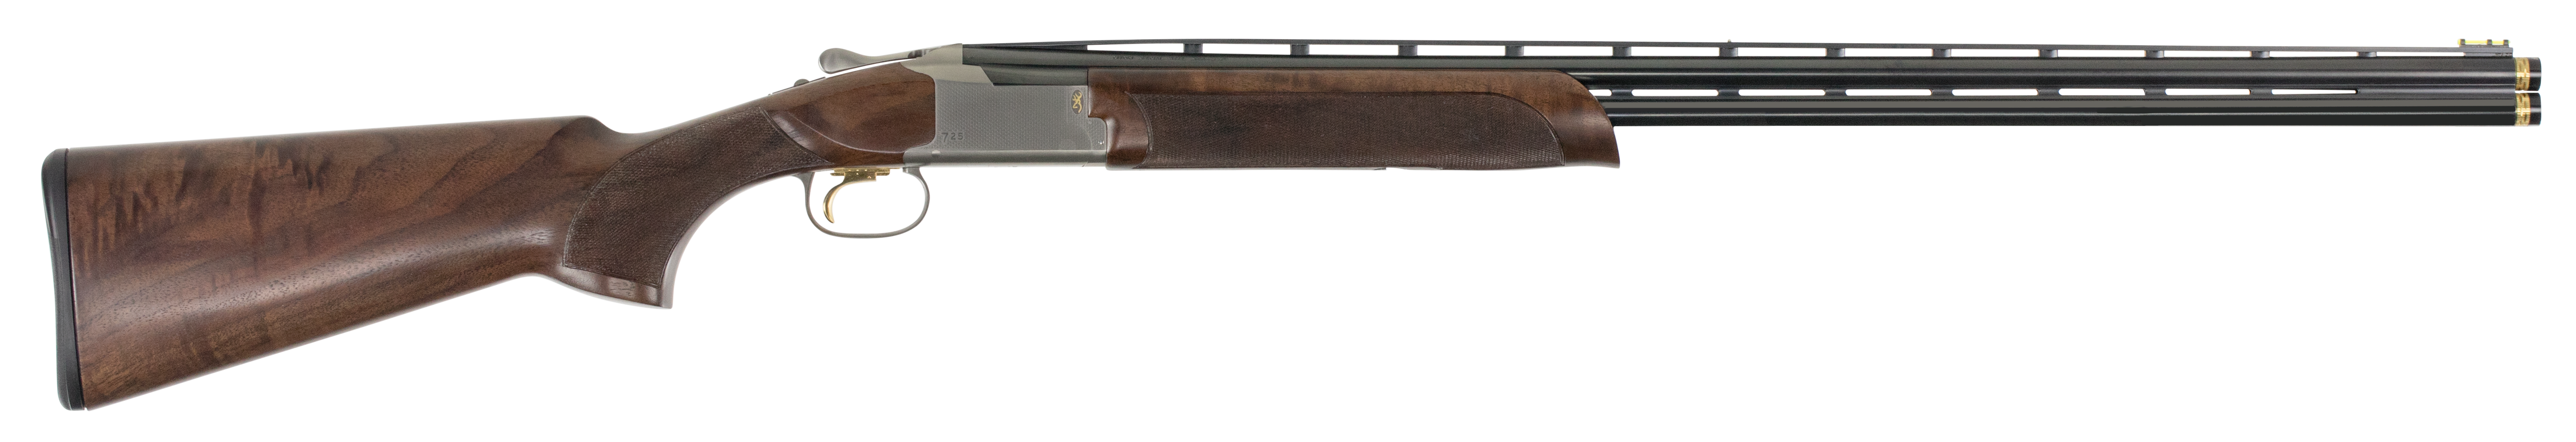 Browning Citori 725 Sporting Over/Under Shotgun 2.75'' 28 Gauge 30'' Silver Nitride Steel/Blued Barrel - Grade III Gloss/Grade IV Walnut